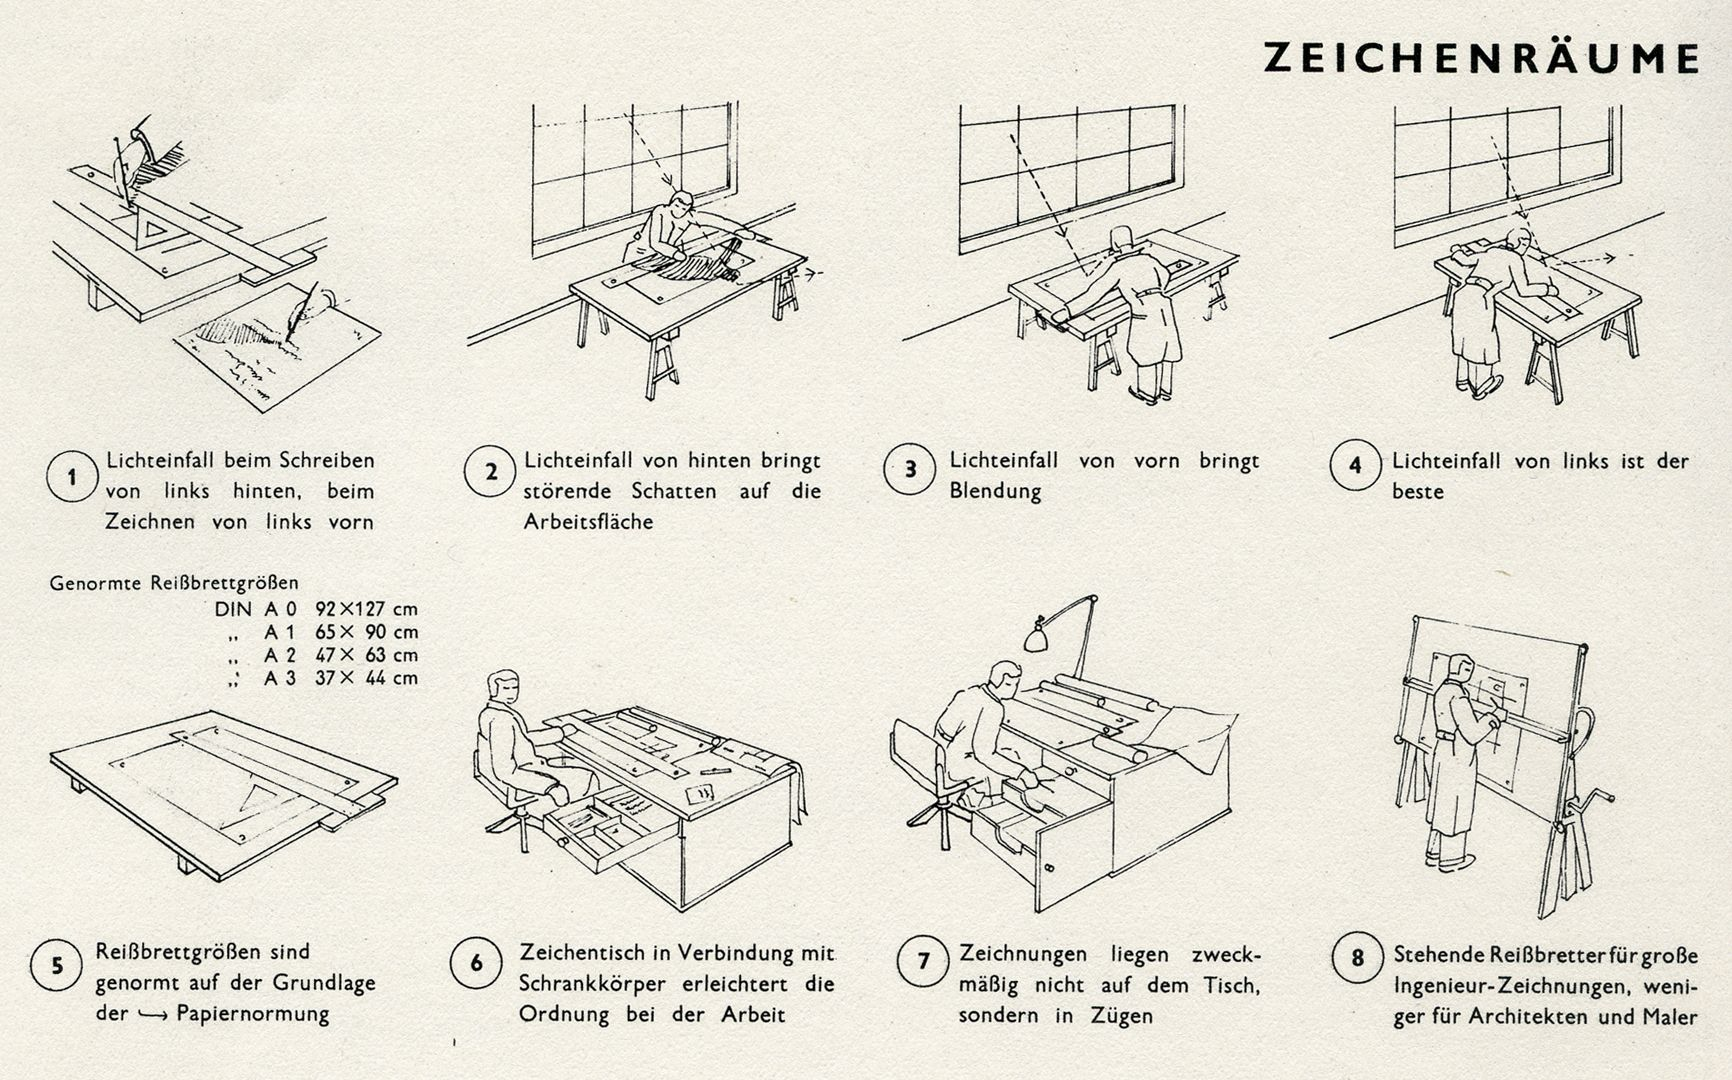 DRAWING SPACES incoming light and types of drawing desks